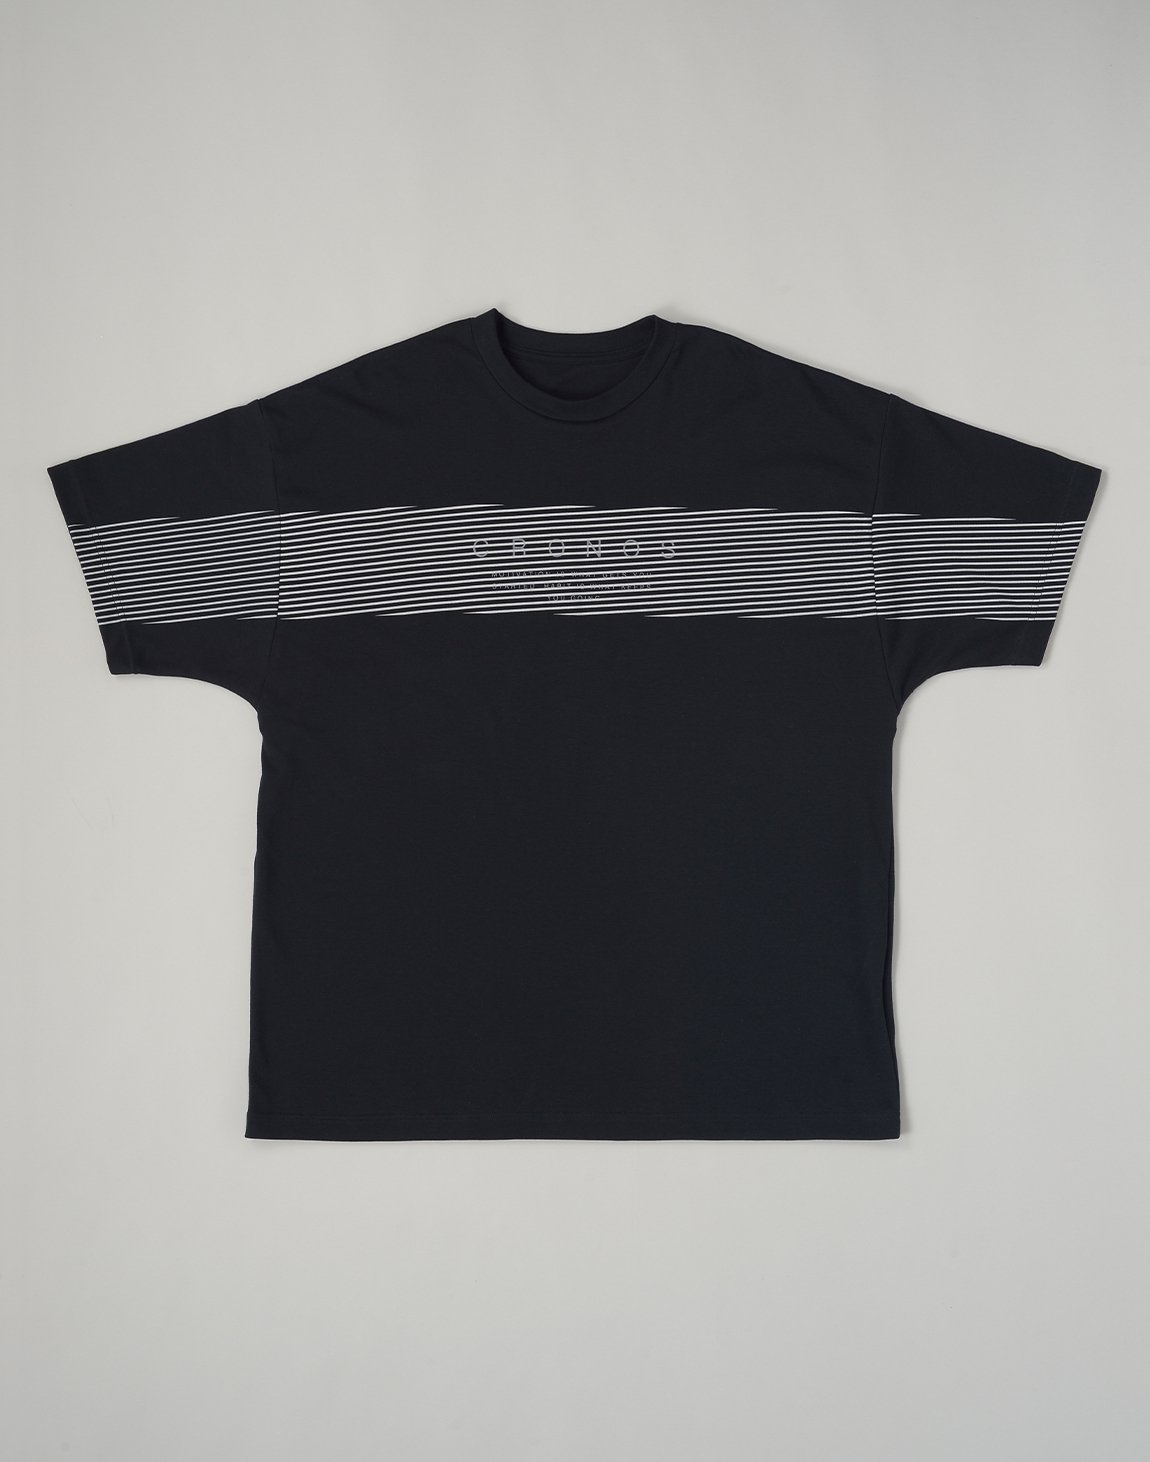 <img class='new_mark_img1' src='https://img.shop-pro.jp/img/new/icons55.gif' style='border:none;display:inline;margin:0px;padding:0px;width:auto;' />CRONOS PARALLEL LINE LOGO OVERSIZE T-SHIRTS【BLACK】